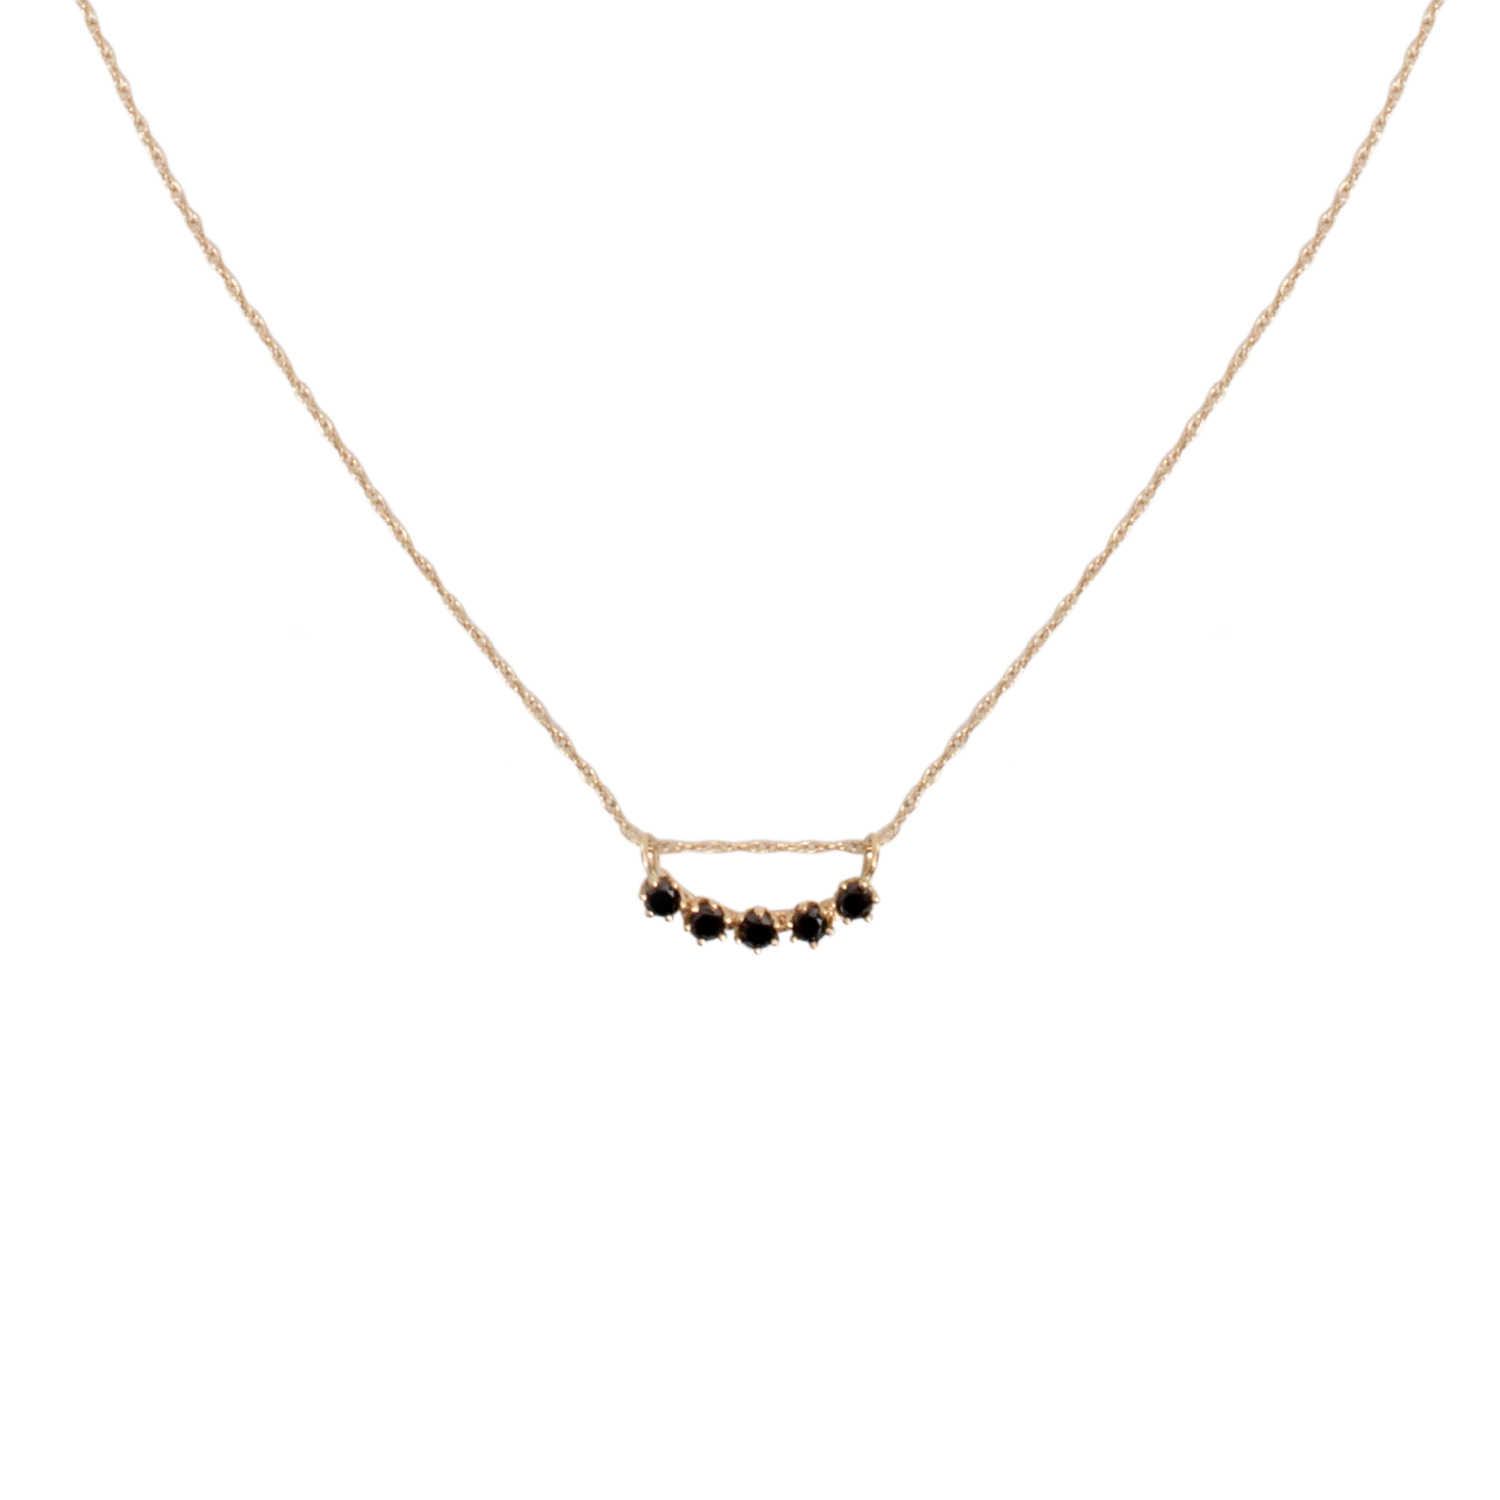 and palladio en diamond pendant jewelry orafa black domino palladium diamante necklace ciondolo domin nero